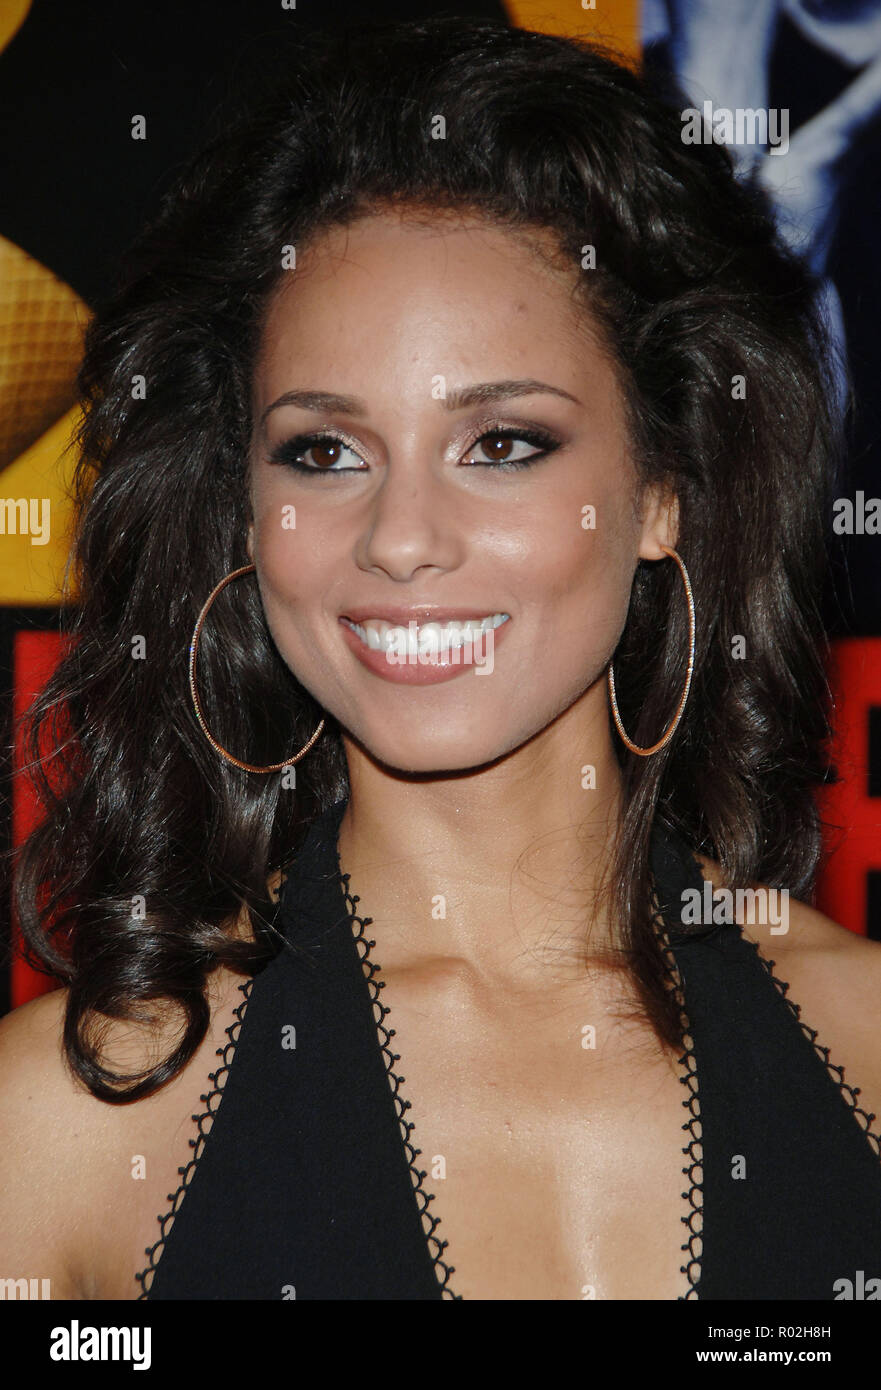 Alicia Keys arriving at the Smokin' Aces at the Chinese Theatre In Los Angeles. January 18, 2007.  smile portrait headshot KeysAlicia029 Red Carpet Event, Vertical, USA, Film Industry, Celebrities,  Photography, Bestof, Arts Culture and Entertainment, Topix Celebrities fashion /  Vertical, Best of, Event in Hollywood Life - California,  Red Carpet and backstage, USA, Film Industry, Celebrities,  movie celebrities, TV celebrities, Music celebrities, Photography, Bestof, Arts Culture and Entertainment,  Topix, headshot, vertical, one person,, from the year , 2007, inquiry tsuni@Gamma-USA.com - Stock Image